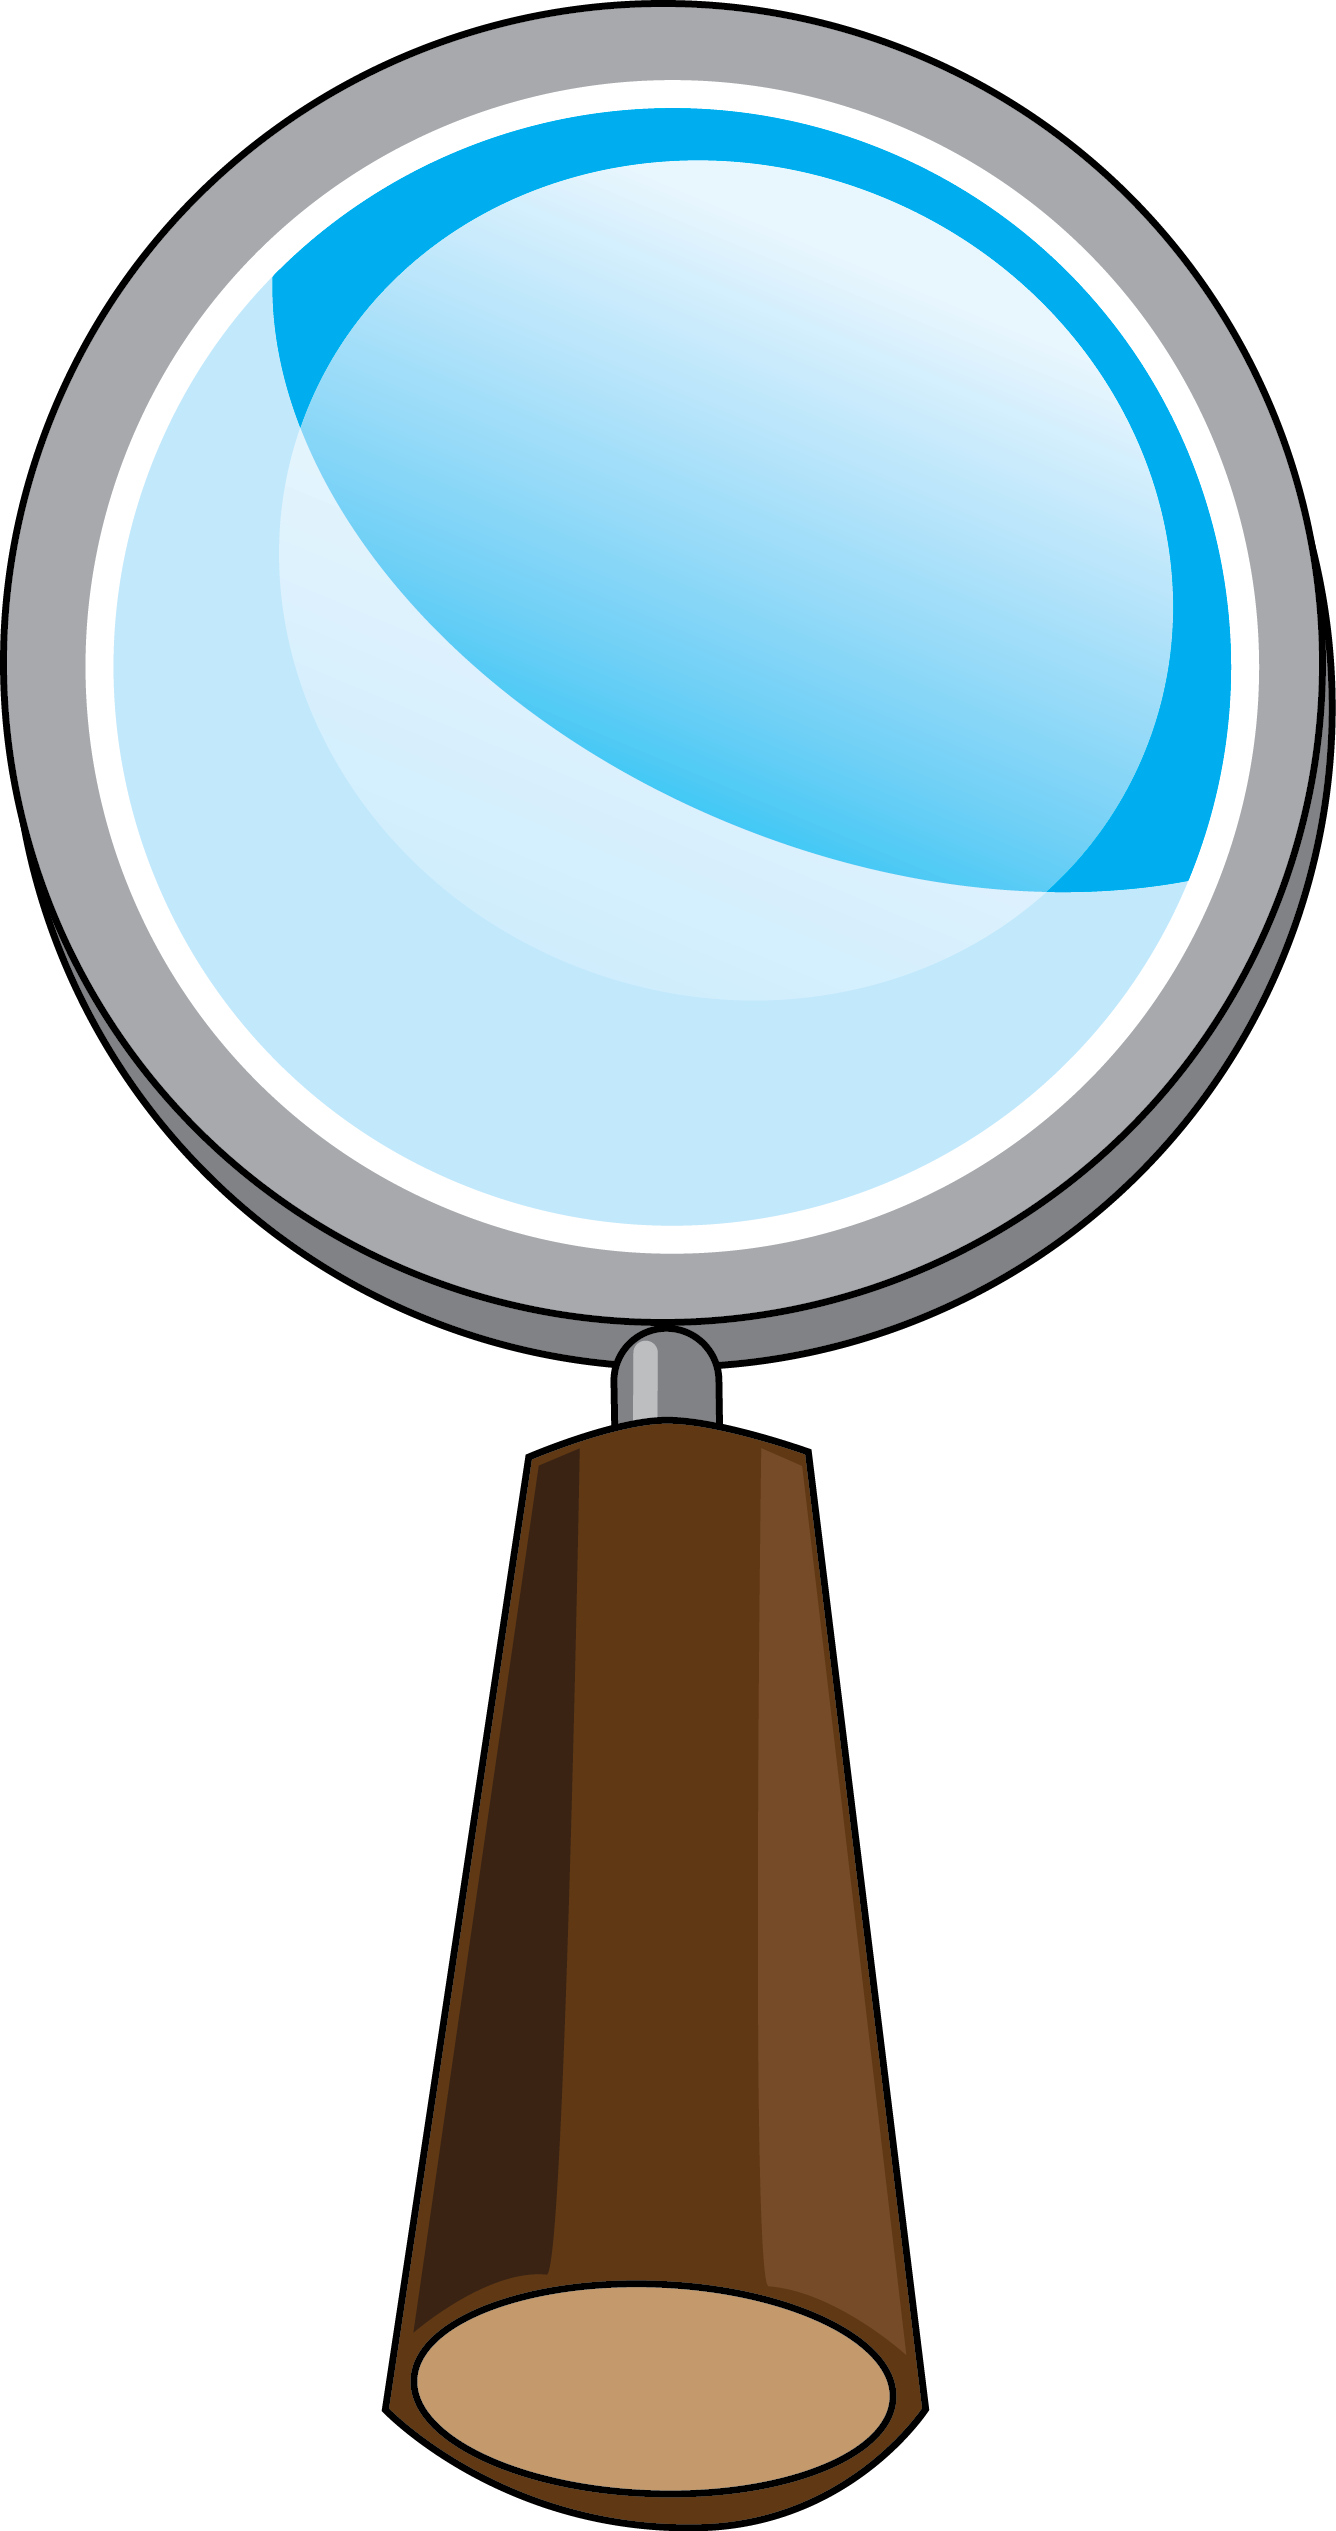 Magnifying glass in progress clipart clipart image 12018 magnifying glass in progress clipart clipart voltagebd Gallery